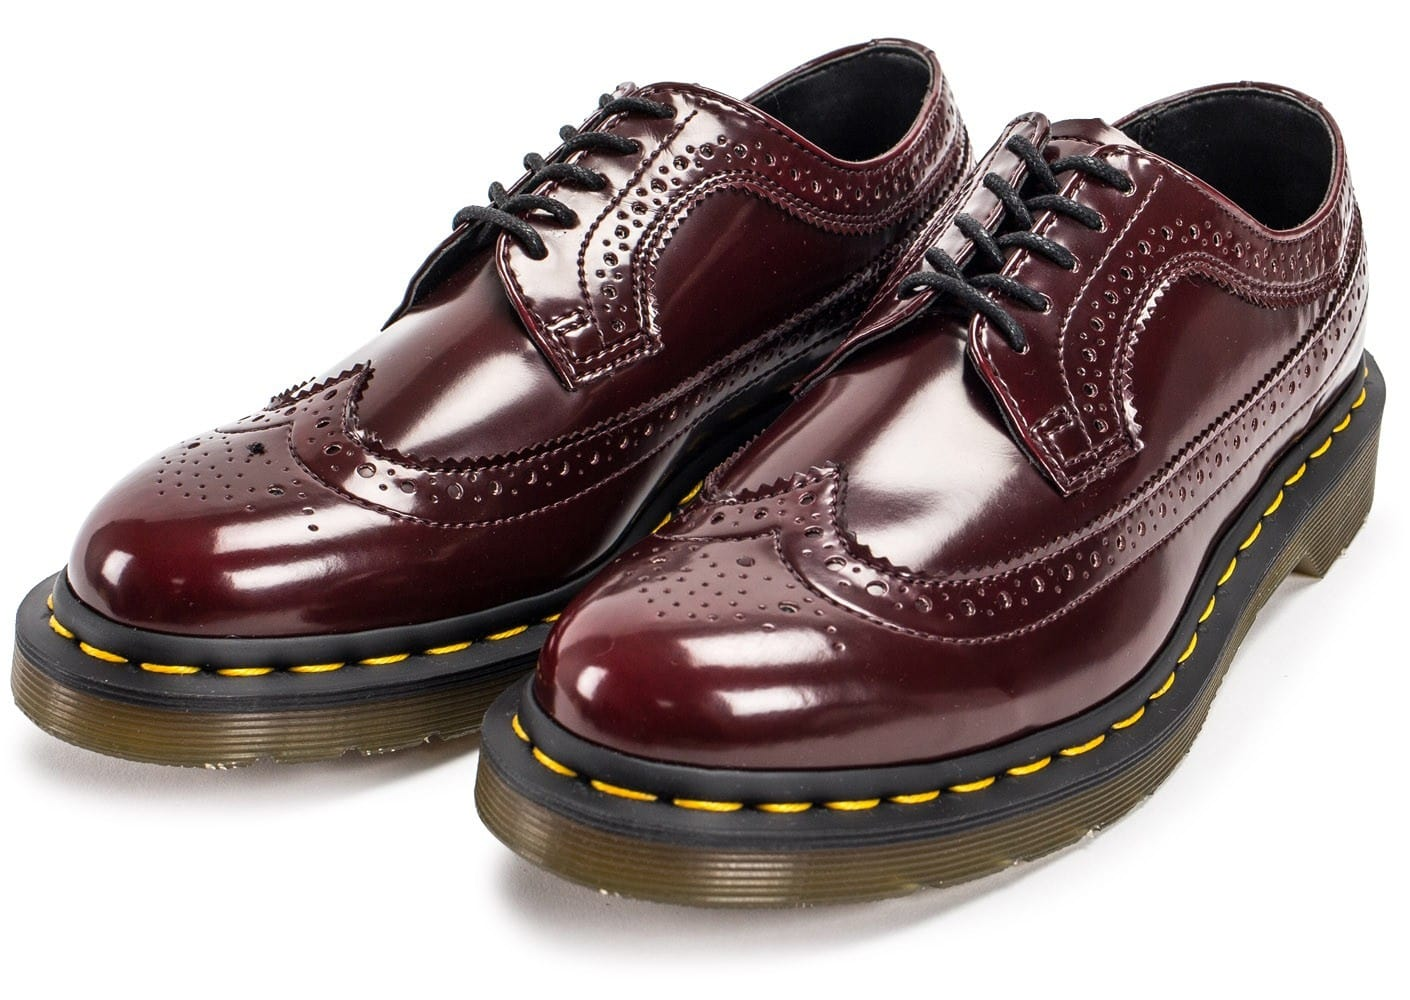 dr martens 3989 wingtip cherry red chaussures femme chausport. Black Bedroom Furniture Sets. Home Design Ideas